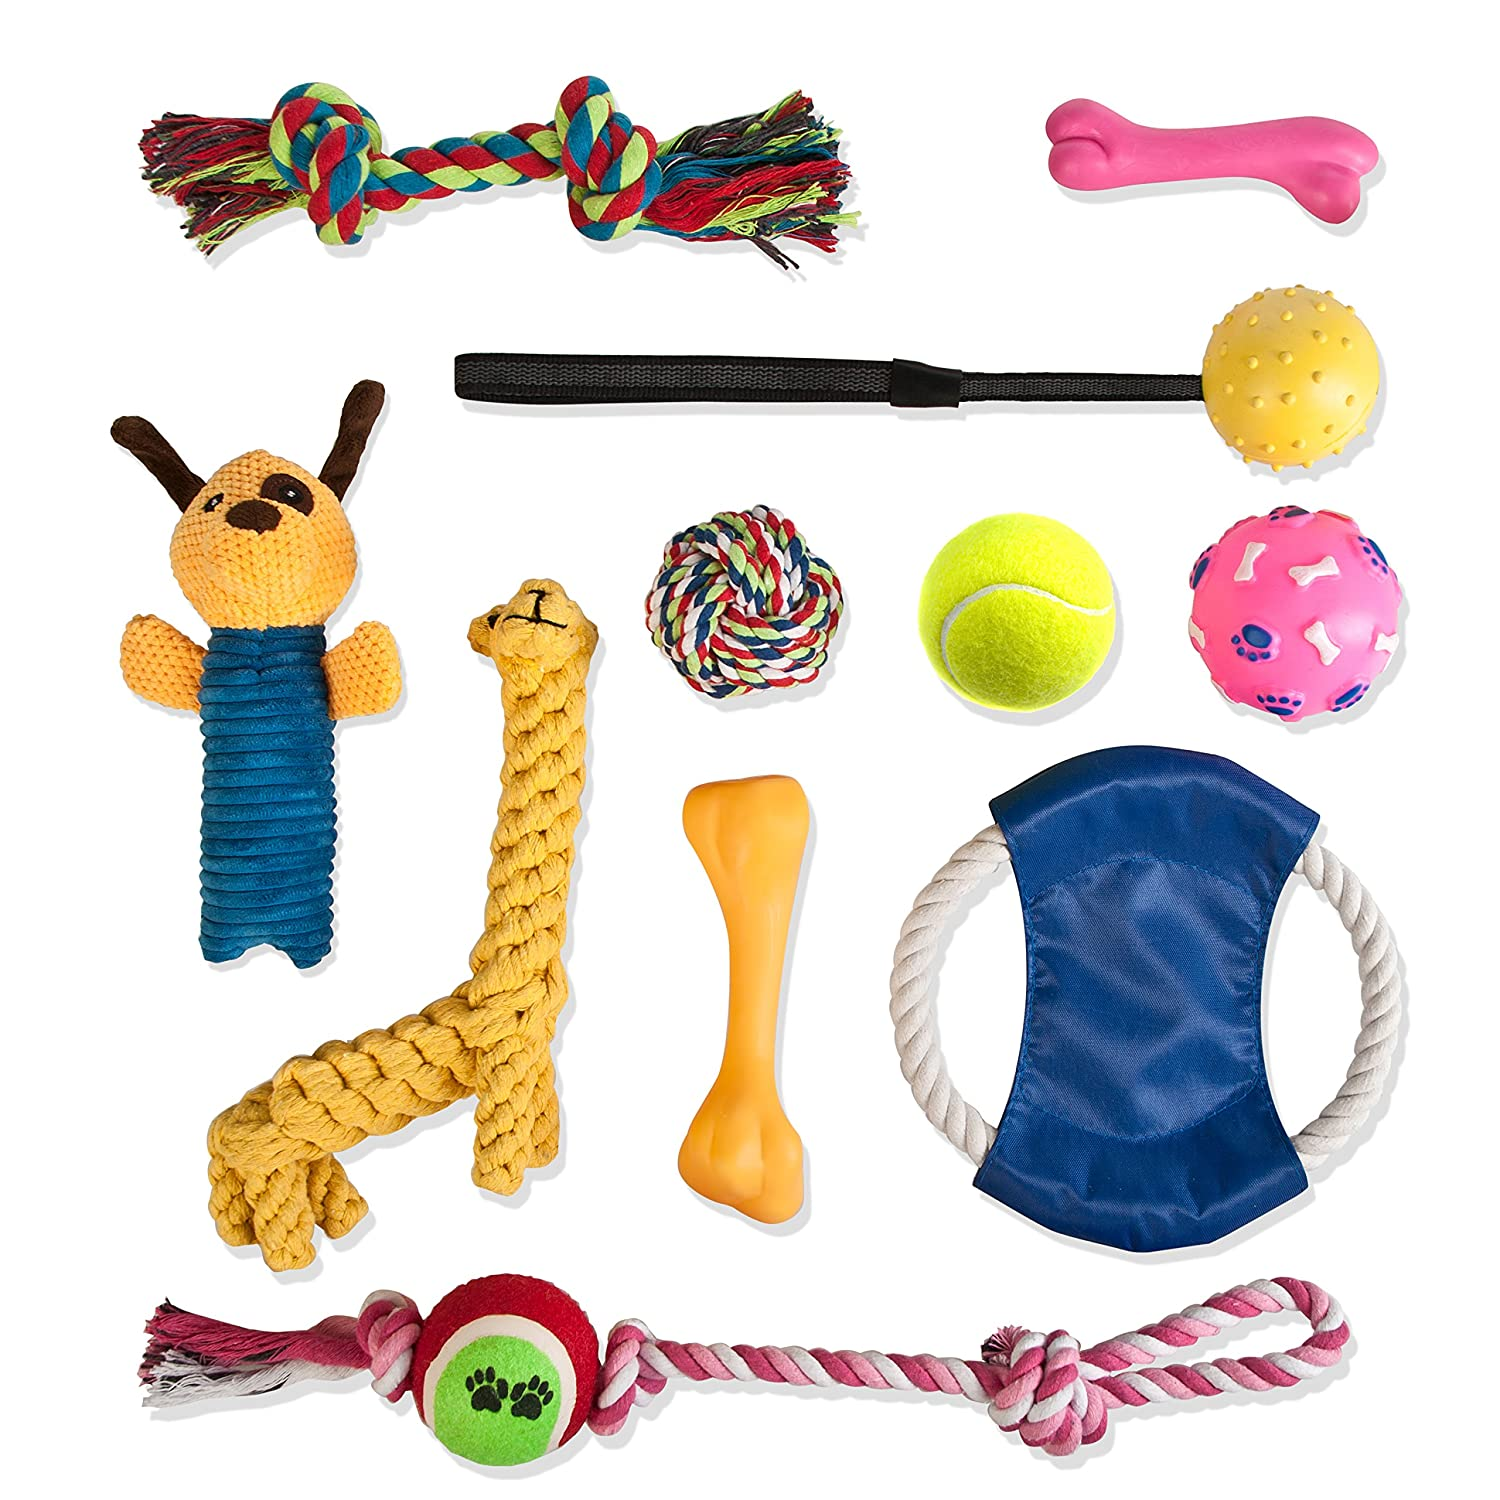 Dog Toy Gift Bag 11 Piece Set of Rope Toys, Squeaky Toys, Rubber Bones, Frisbee & Balls. Great Value Fun Variety Pack of Chew Toys for Small, Medium, and Large Dogs. Also for Puppy Teething